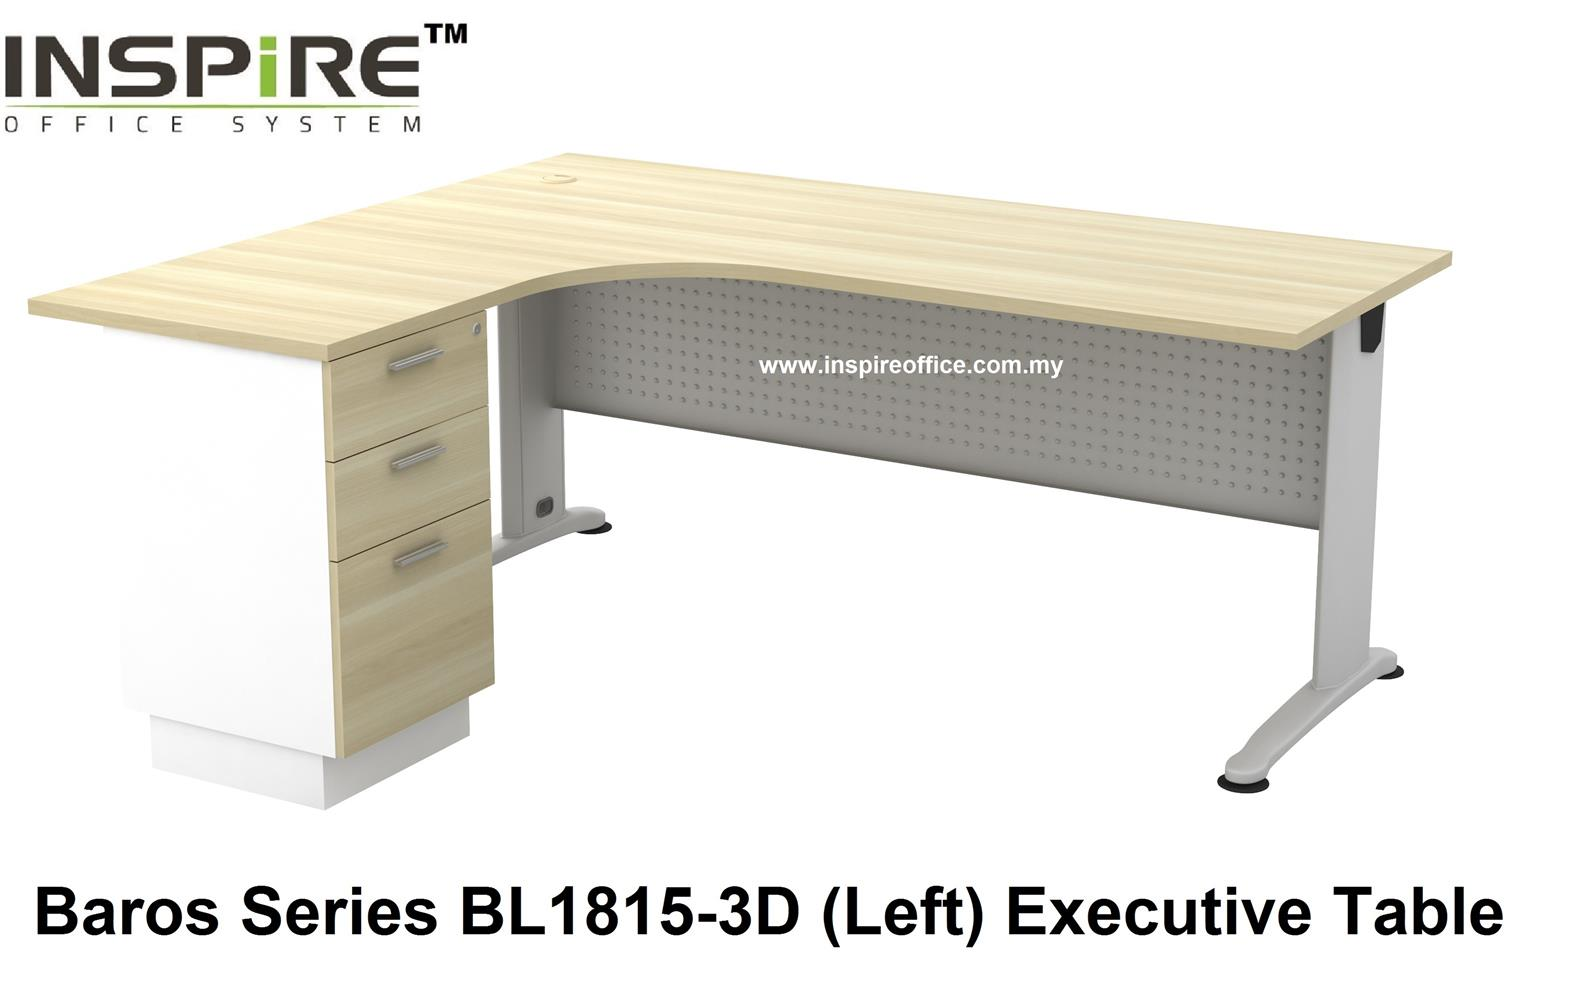 BL-1815-3D BAROS SERIES METAL J LEG EXECUTIVE L SHAPED TABLE